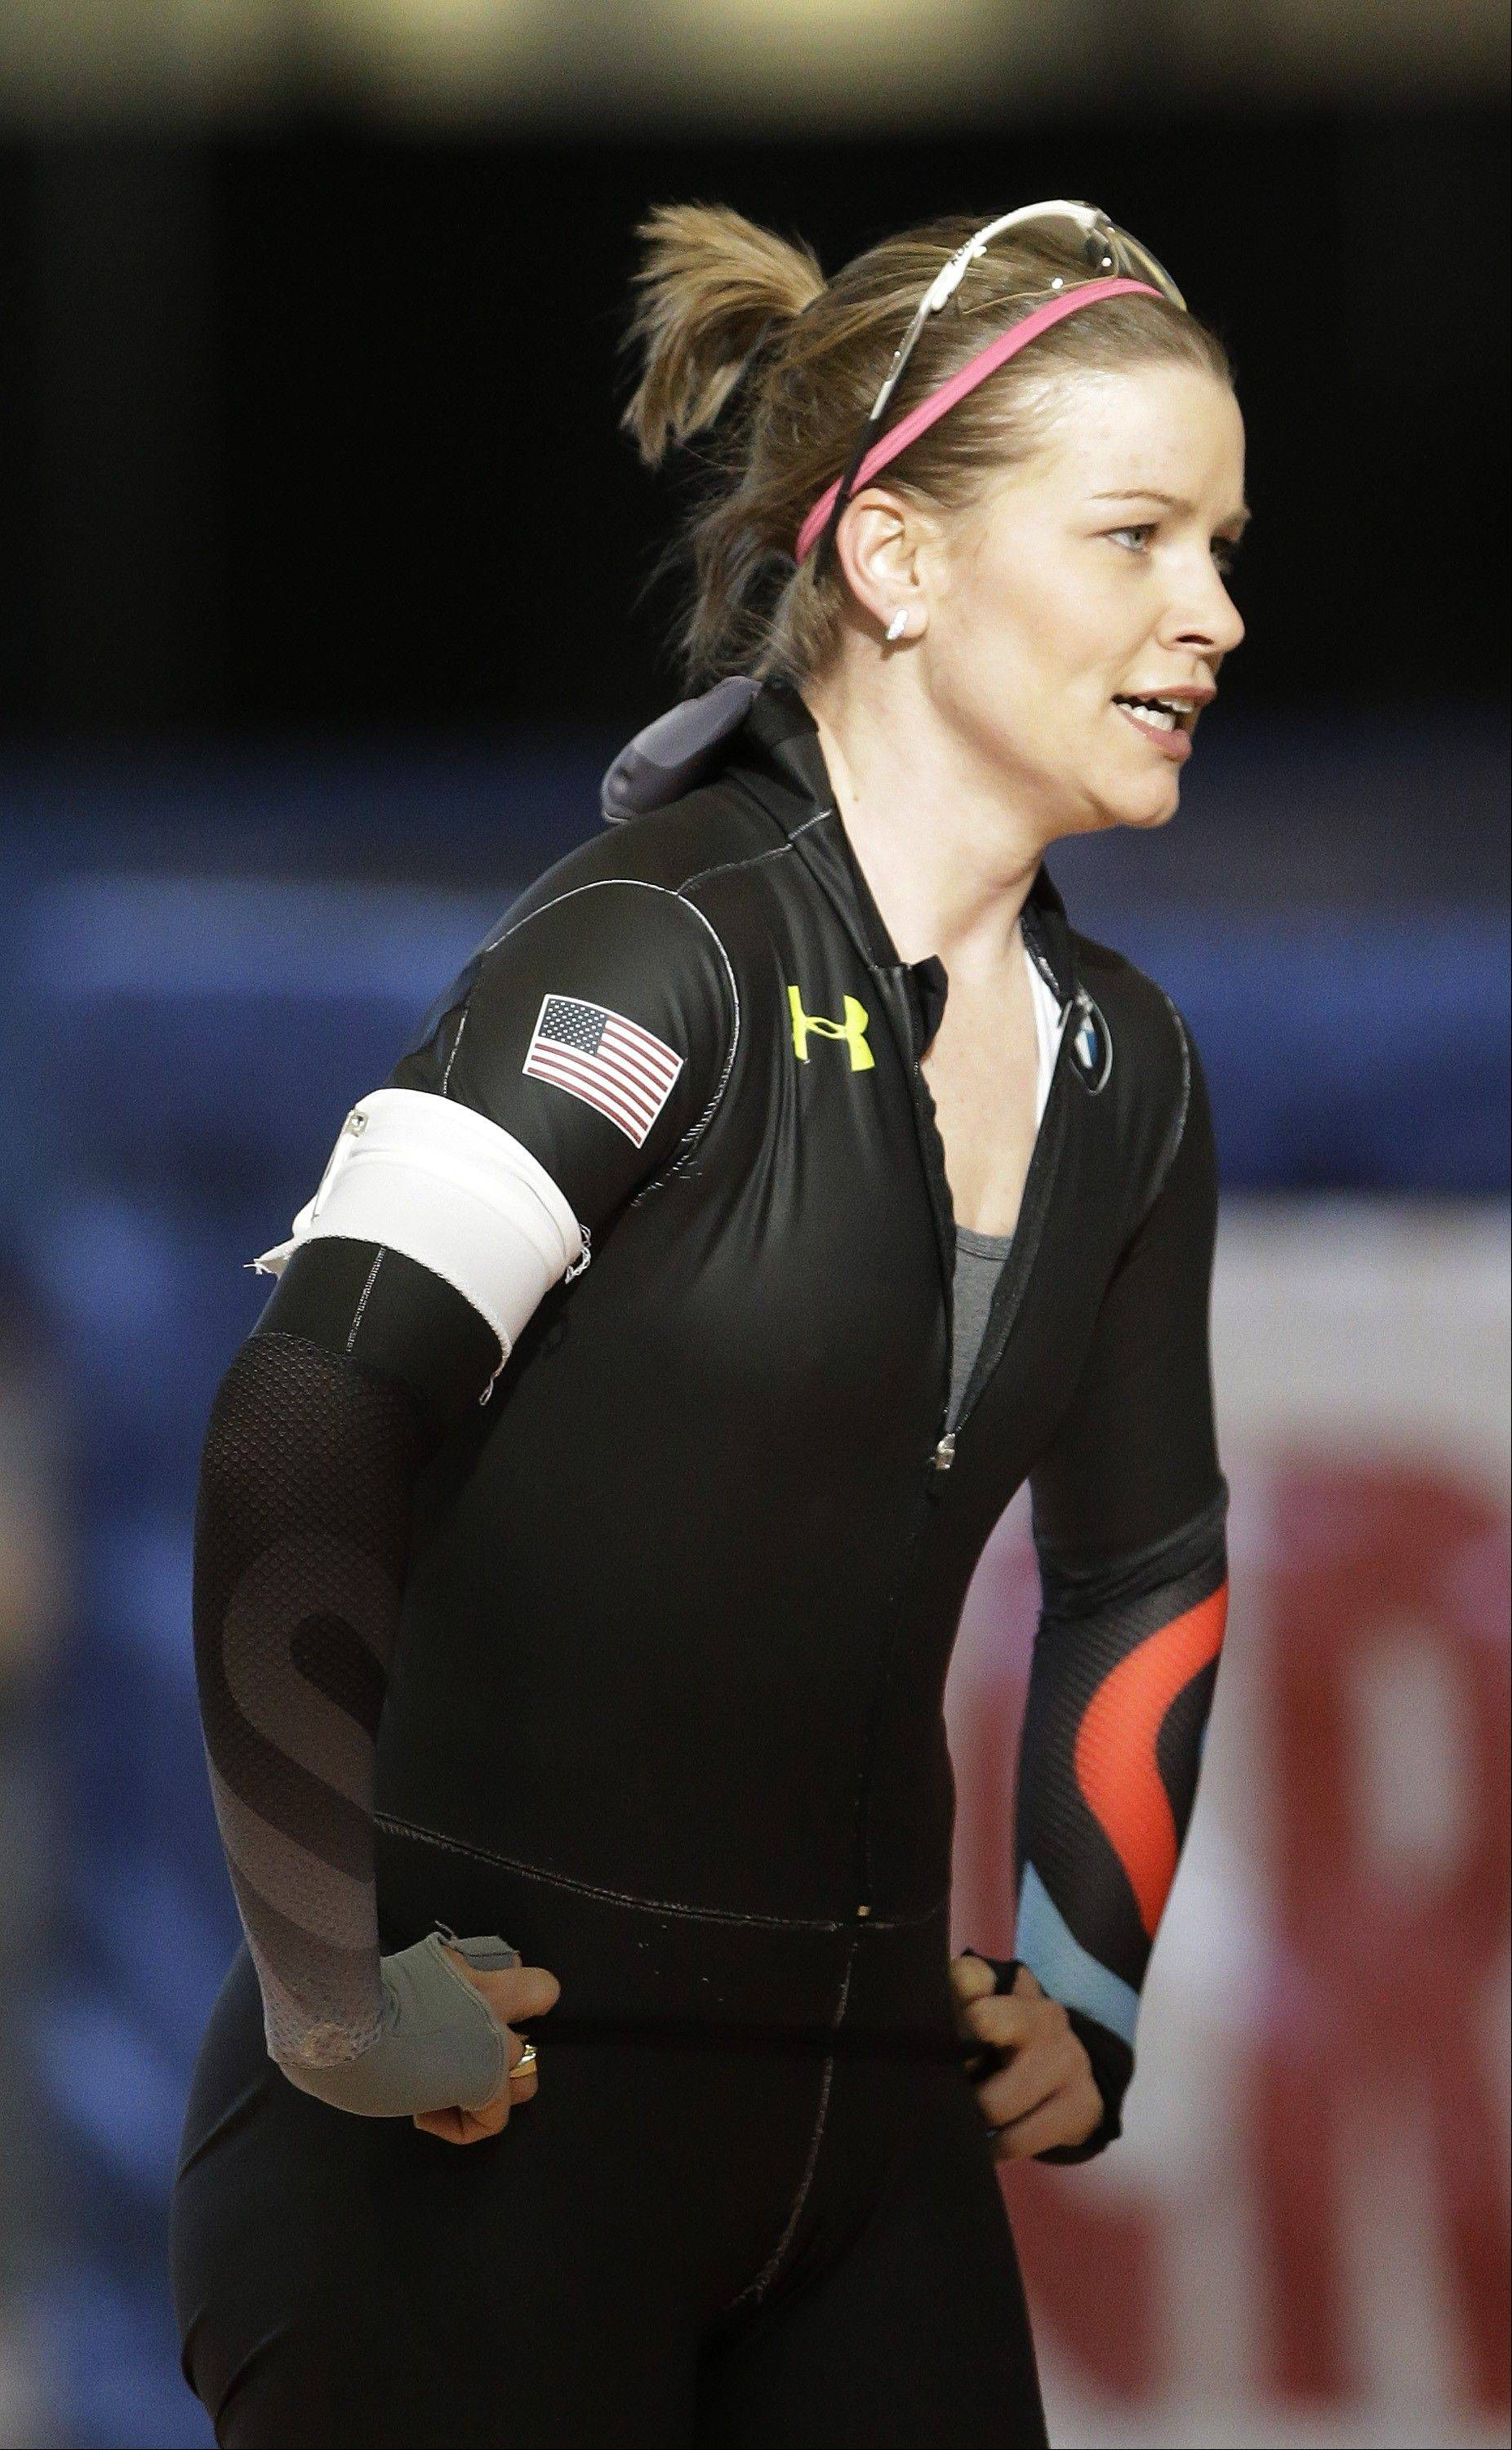 Speedskater Bridie Farrell looks on after competing in the 1000-meter race at the Long Track American Cup Final North American Championship Friday, March 1, 2013, in Kearns, Utah. U.S. Speedskating began an investigation Friday into the report of a female skater accusing former Olympian and organization president Andy Gabel of sexual abuse in the 1990s. Farrell told public radio station WUWM in Milwaukee that she had sexual contact with Gabel repeatedly over several months in 1997 and 1998 while both were training in New York and Michigan. When the alleged abuse began, she was 15 and Gabel was 33.